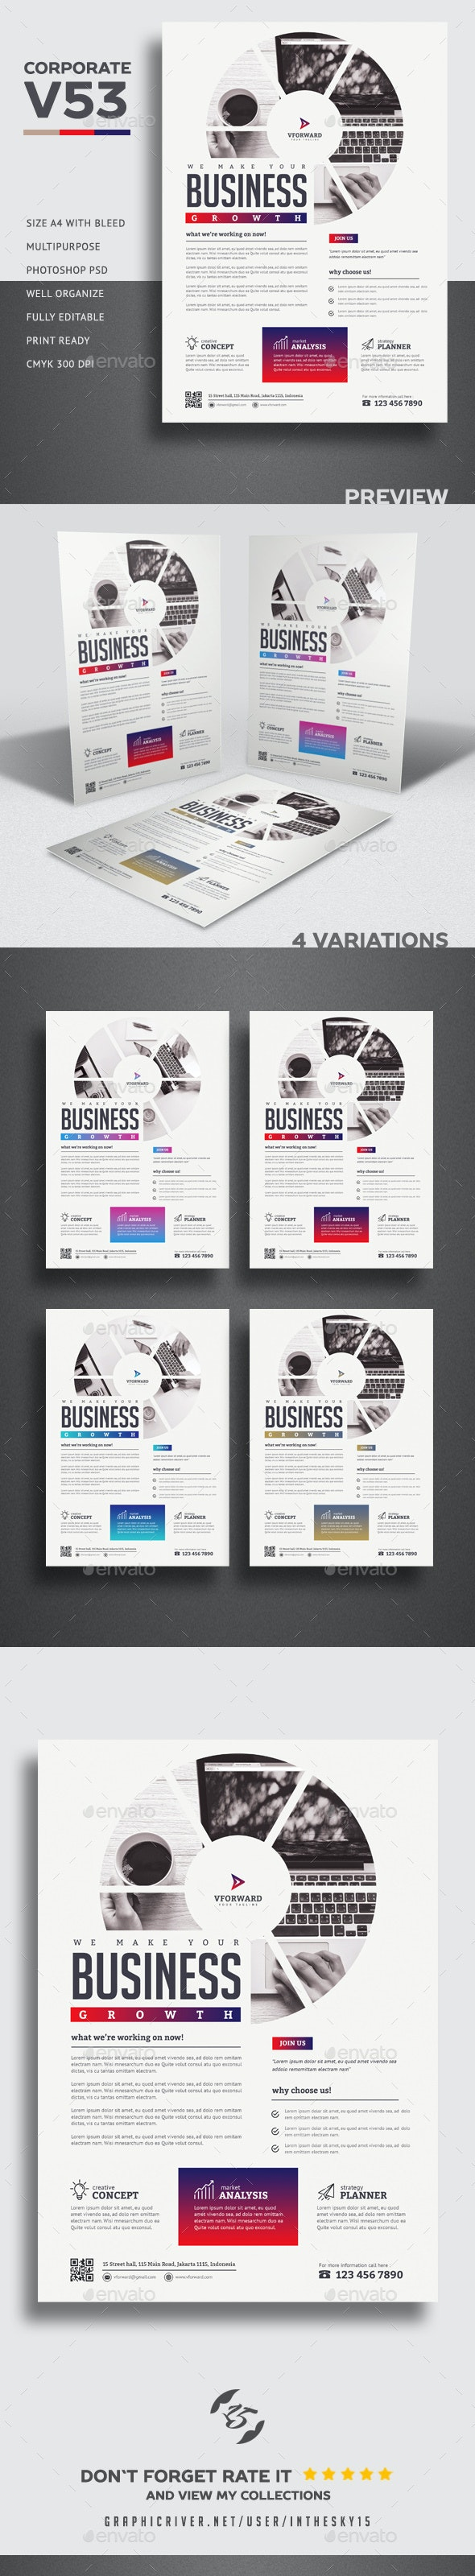 Corporate V53 Flyer - Corporate Flyers